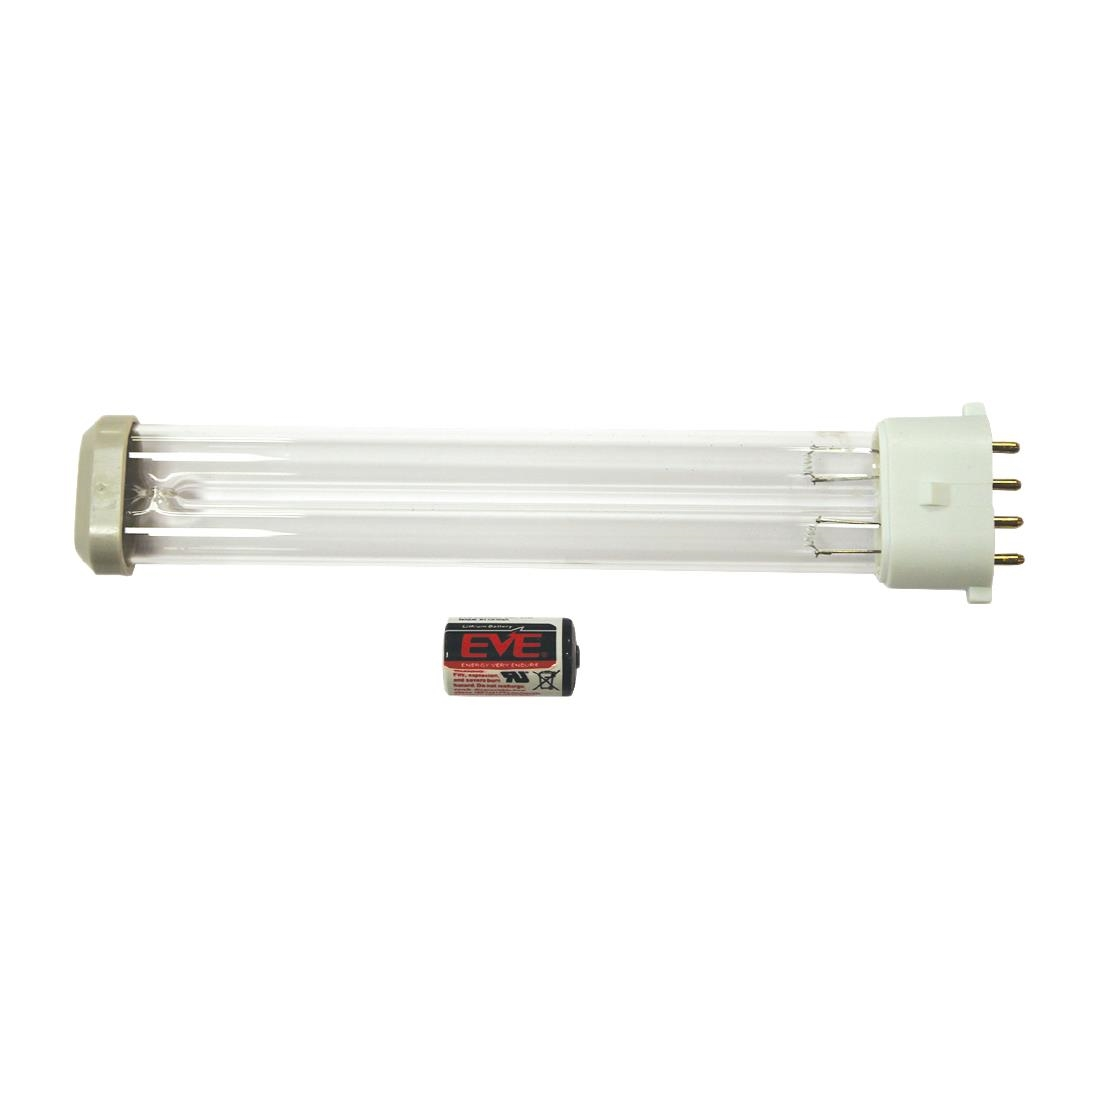 Image of HyGenikx System Replacement Lamp and Battery Silver/grey Cap HGX-15-R